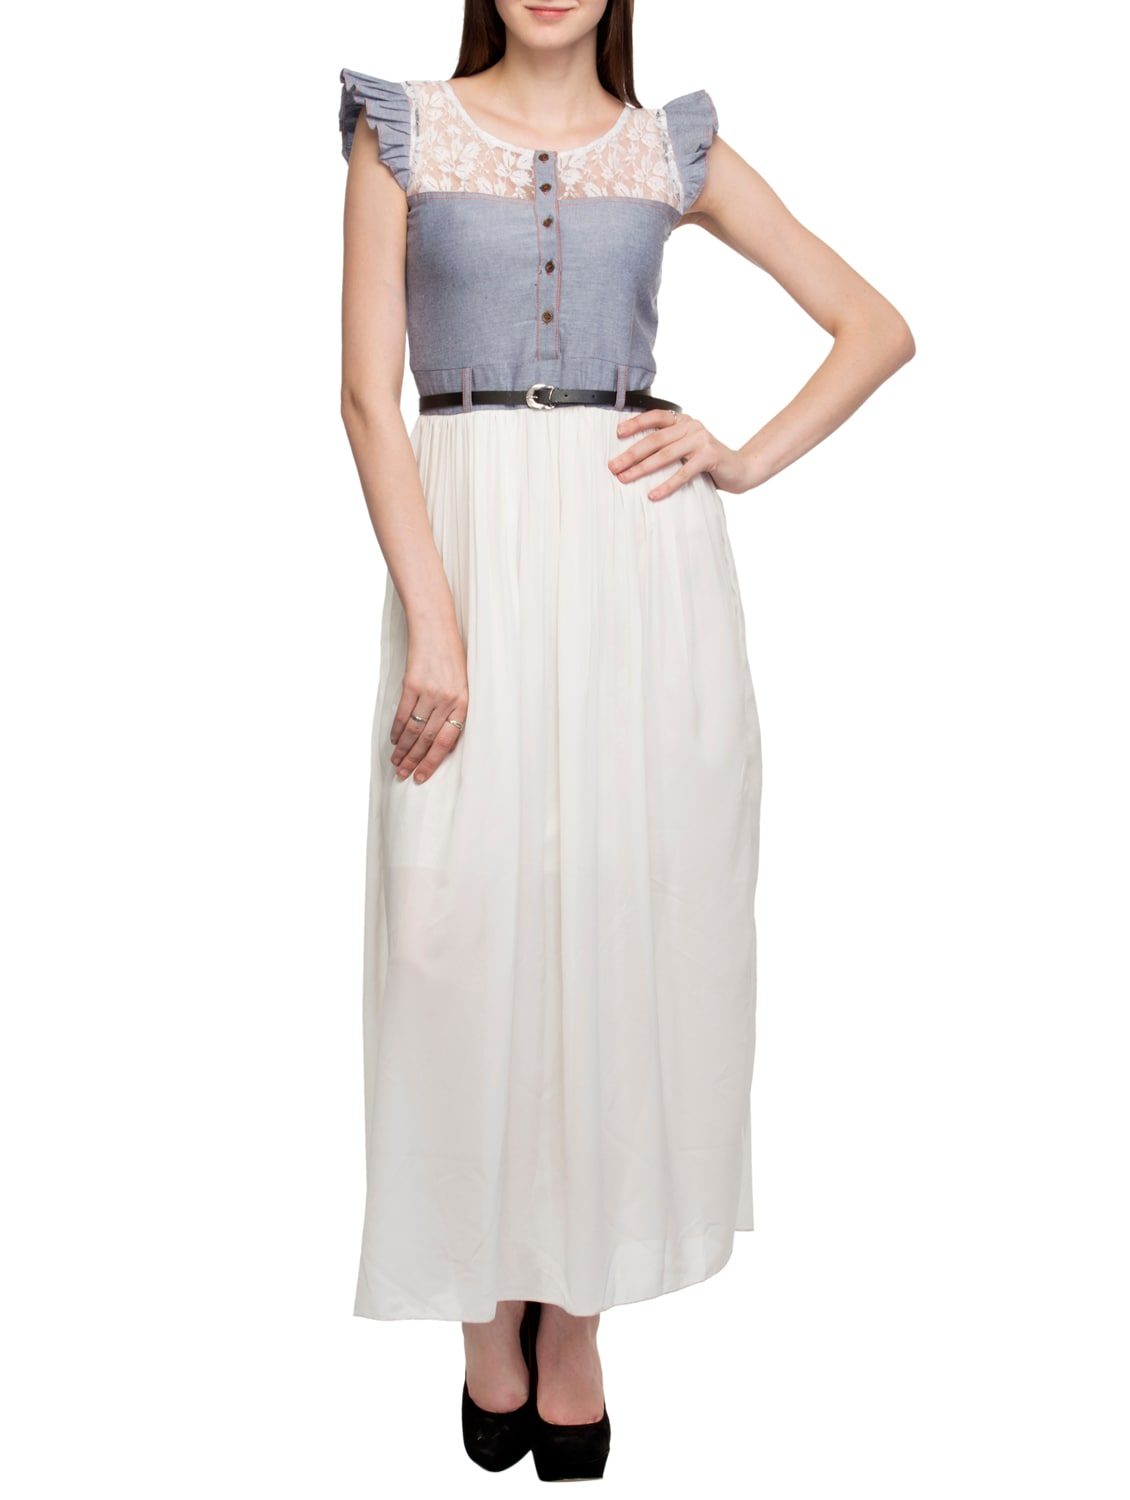 Upto 60% Off On Dresses From Miss Chase